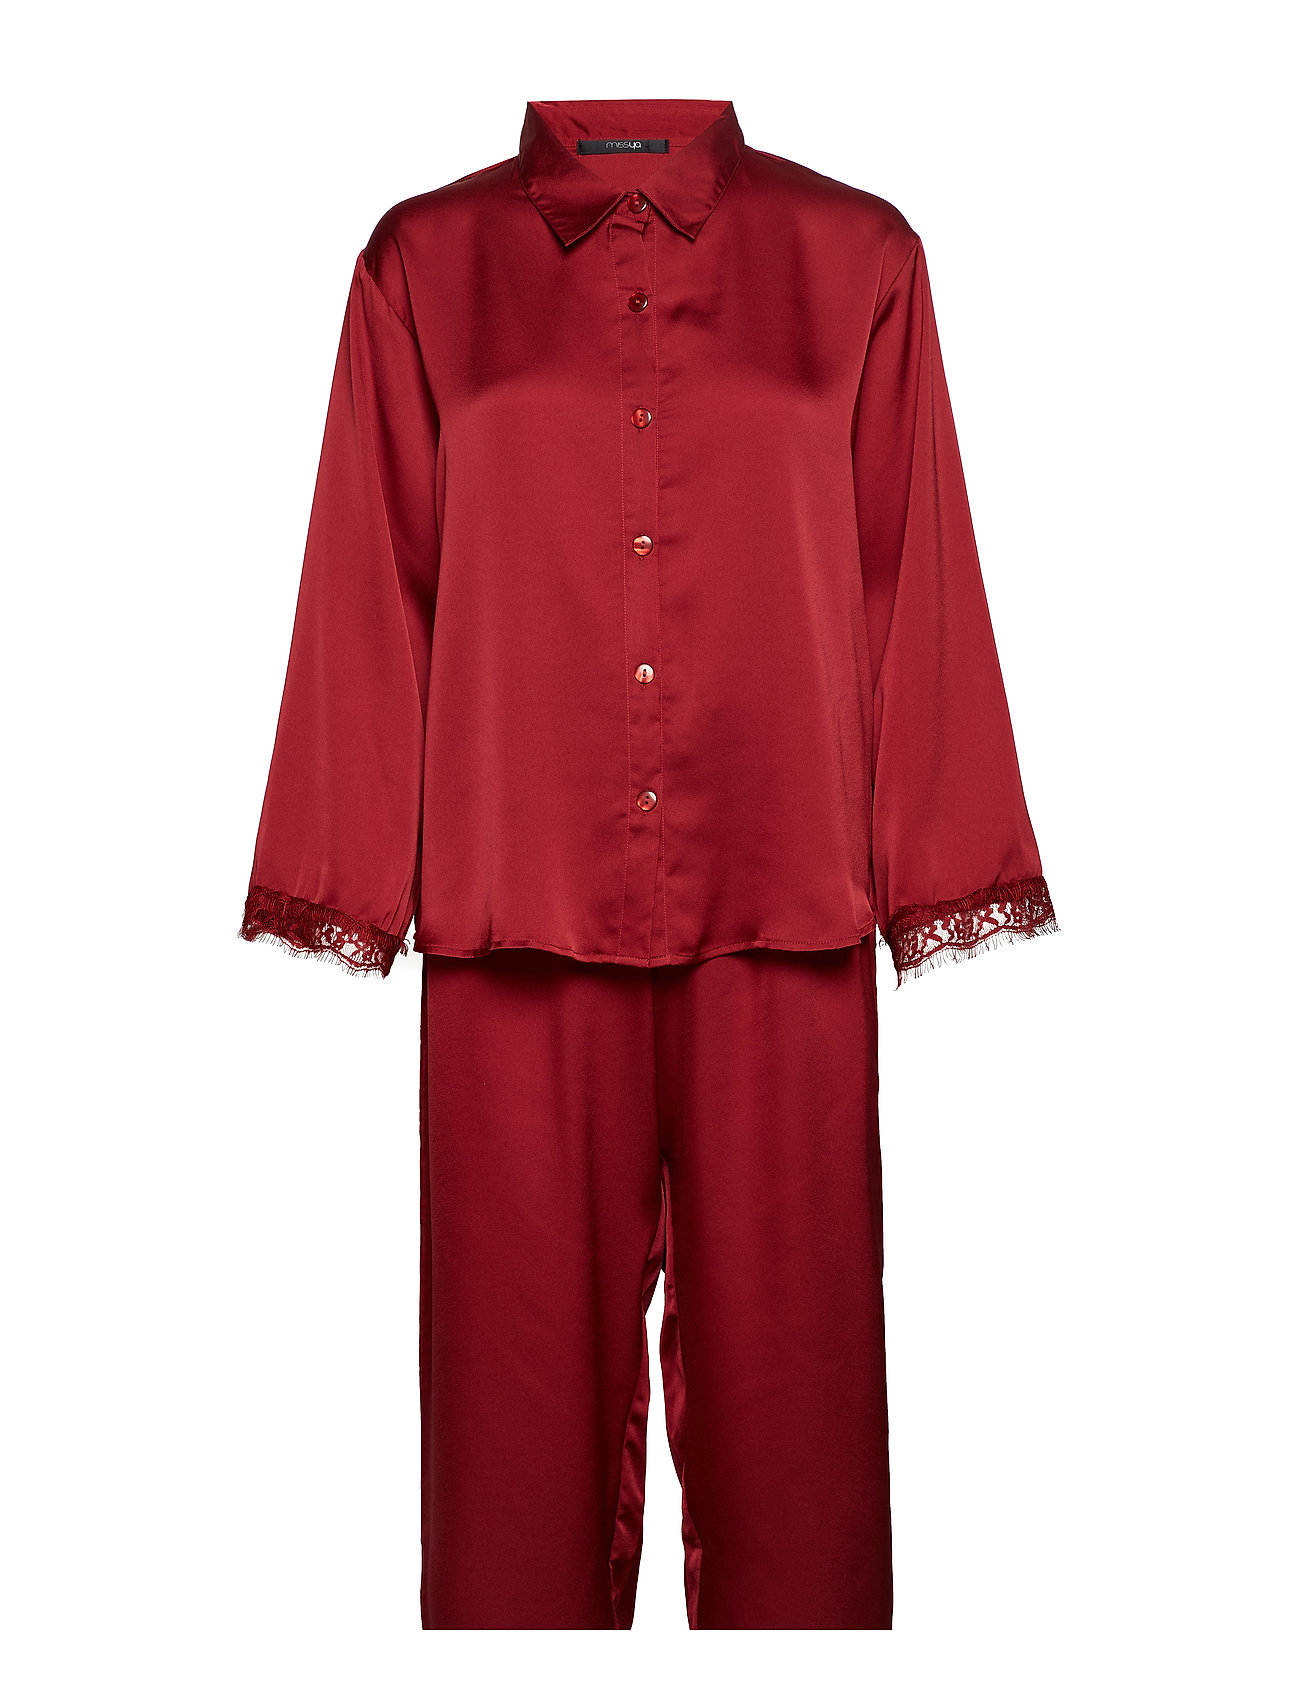 Missya Smilla pyjamas - DARK RED